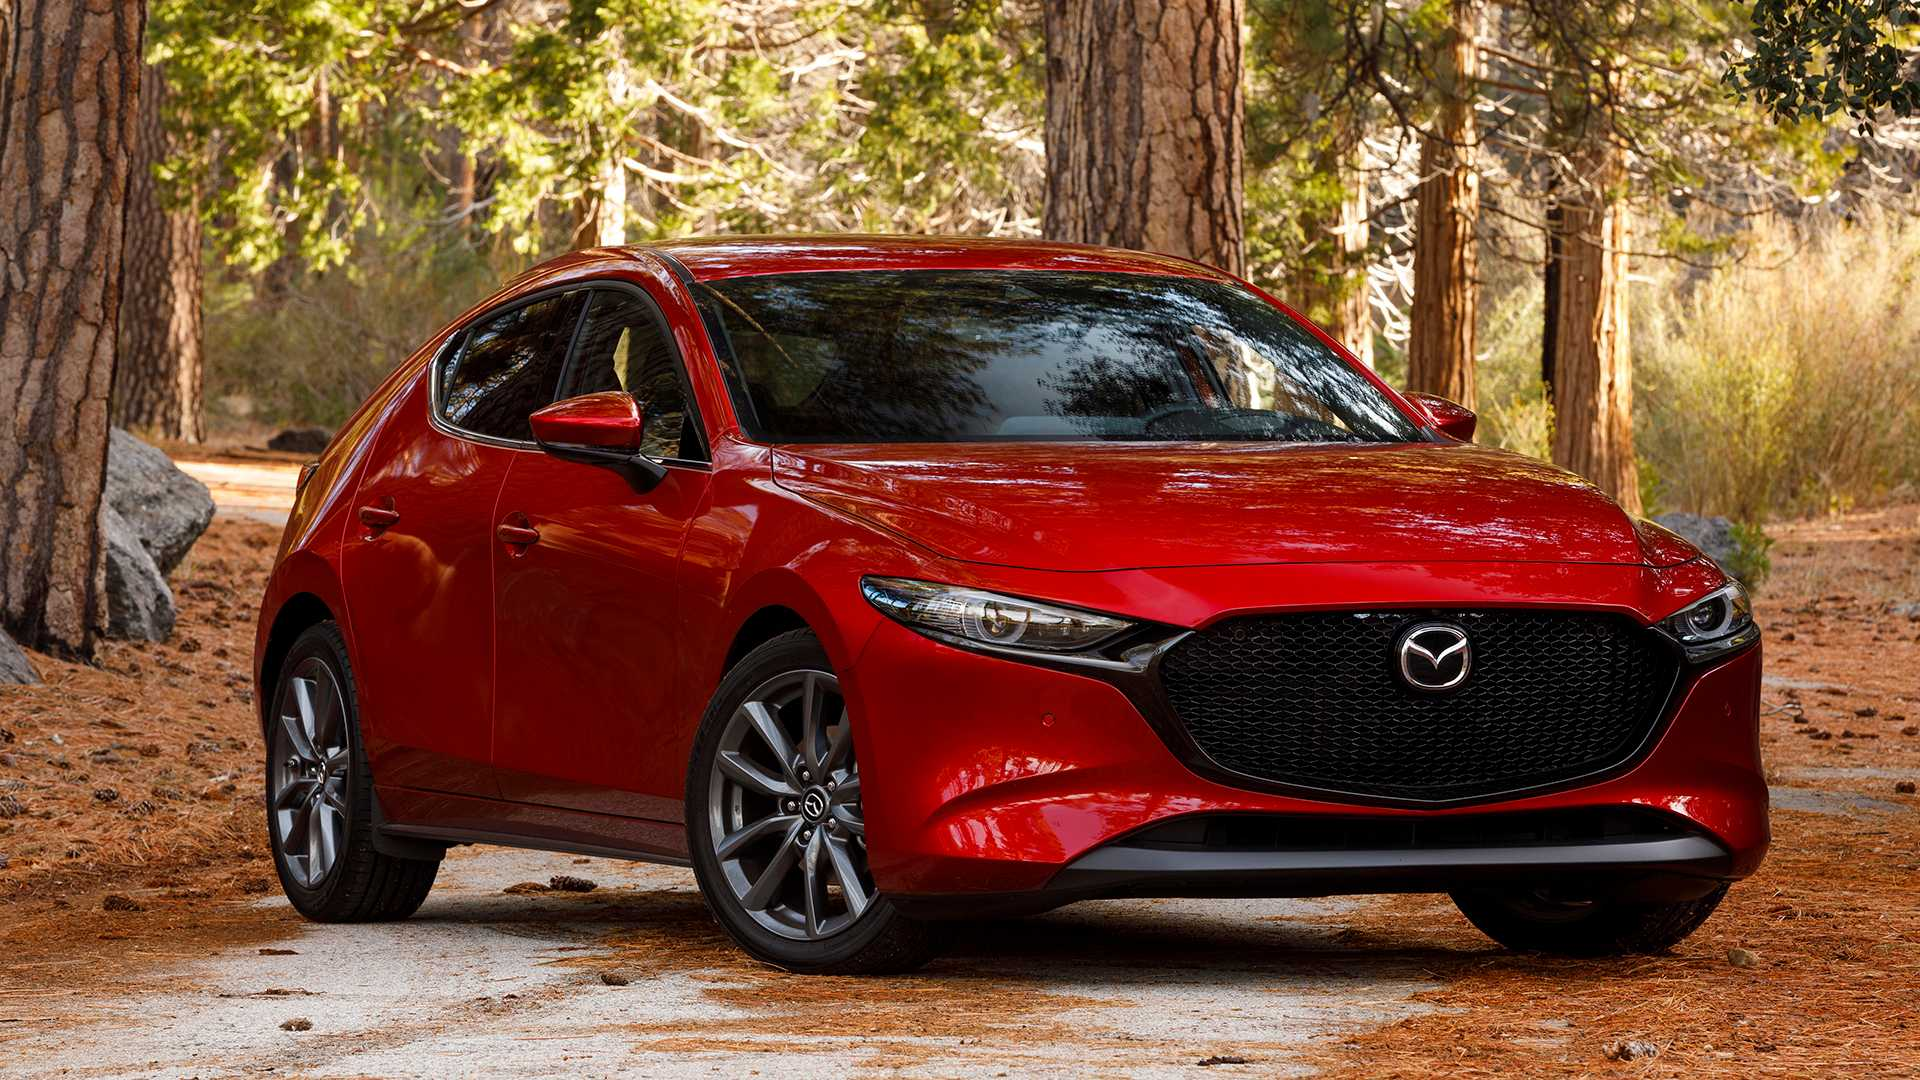 The best tires for the Mazda 3